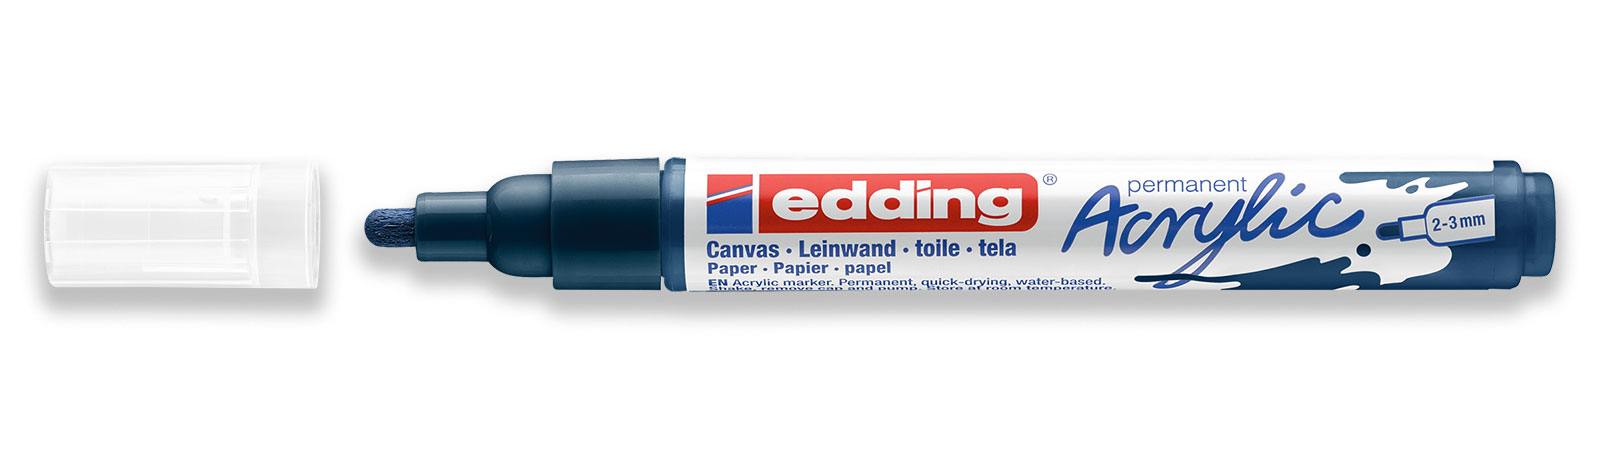 edding acrylic marker medium in dark blue